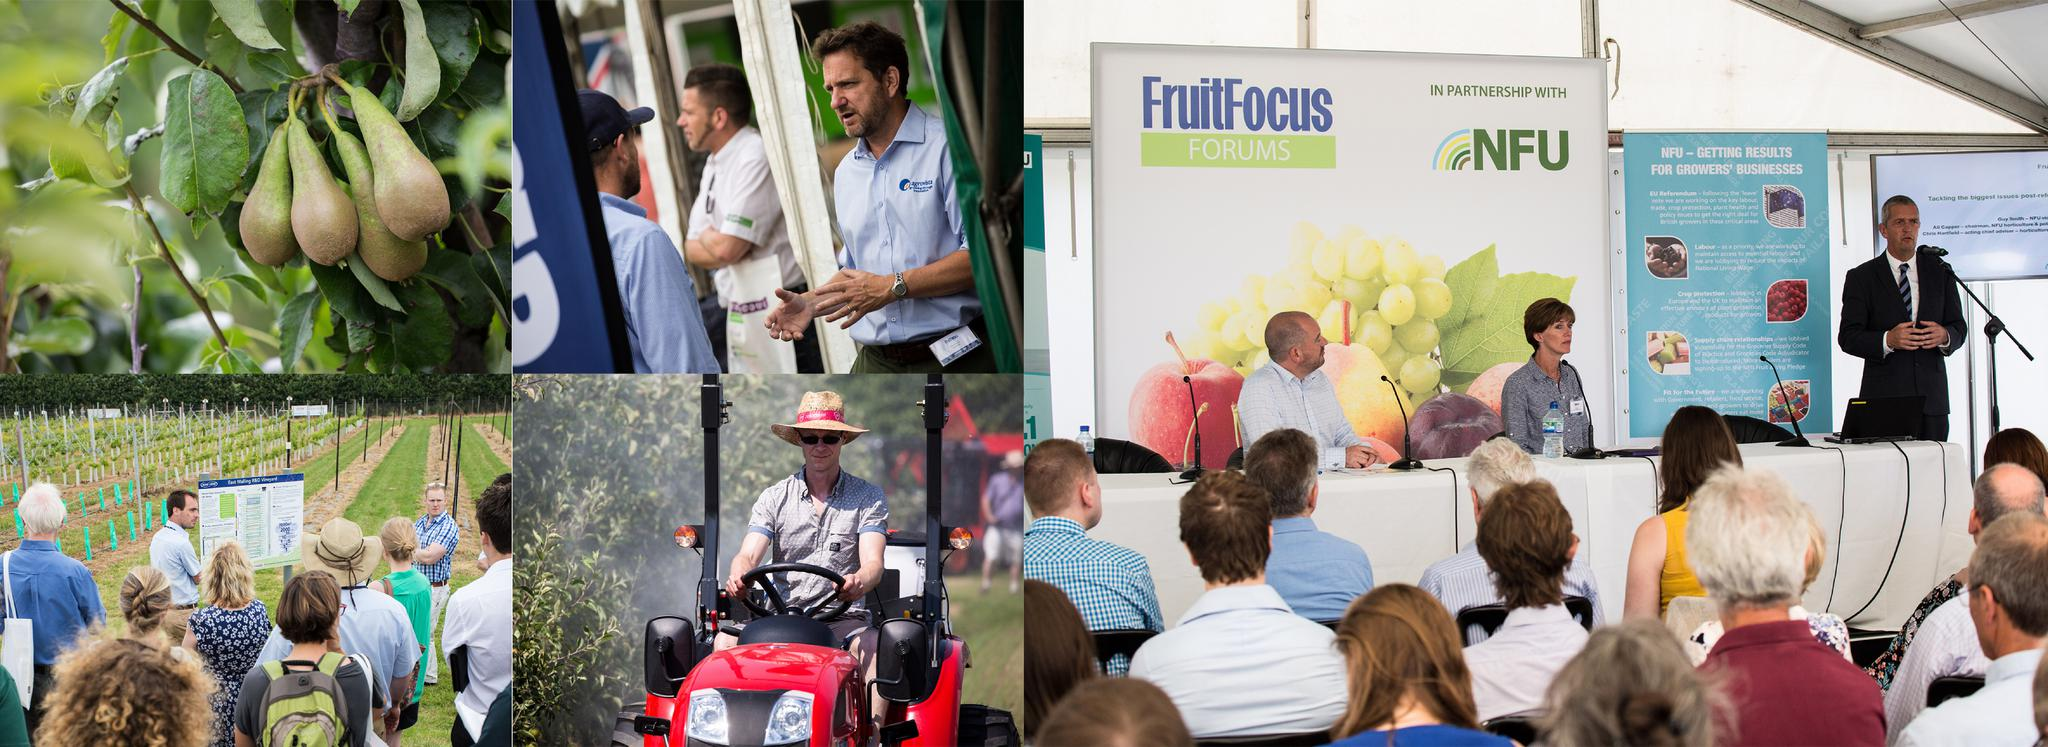 EndoSan exhibits at Fruit Focus 2017